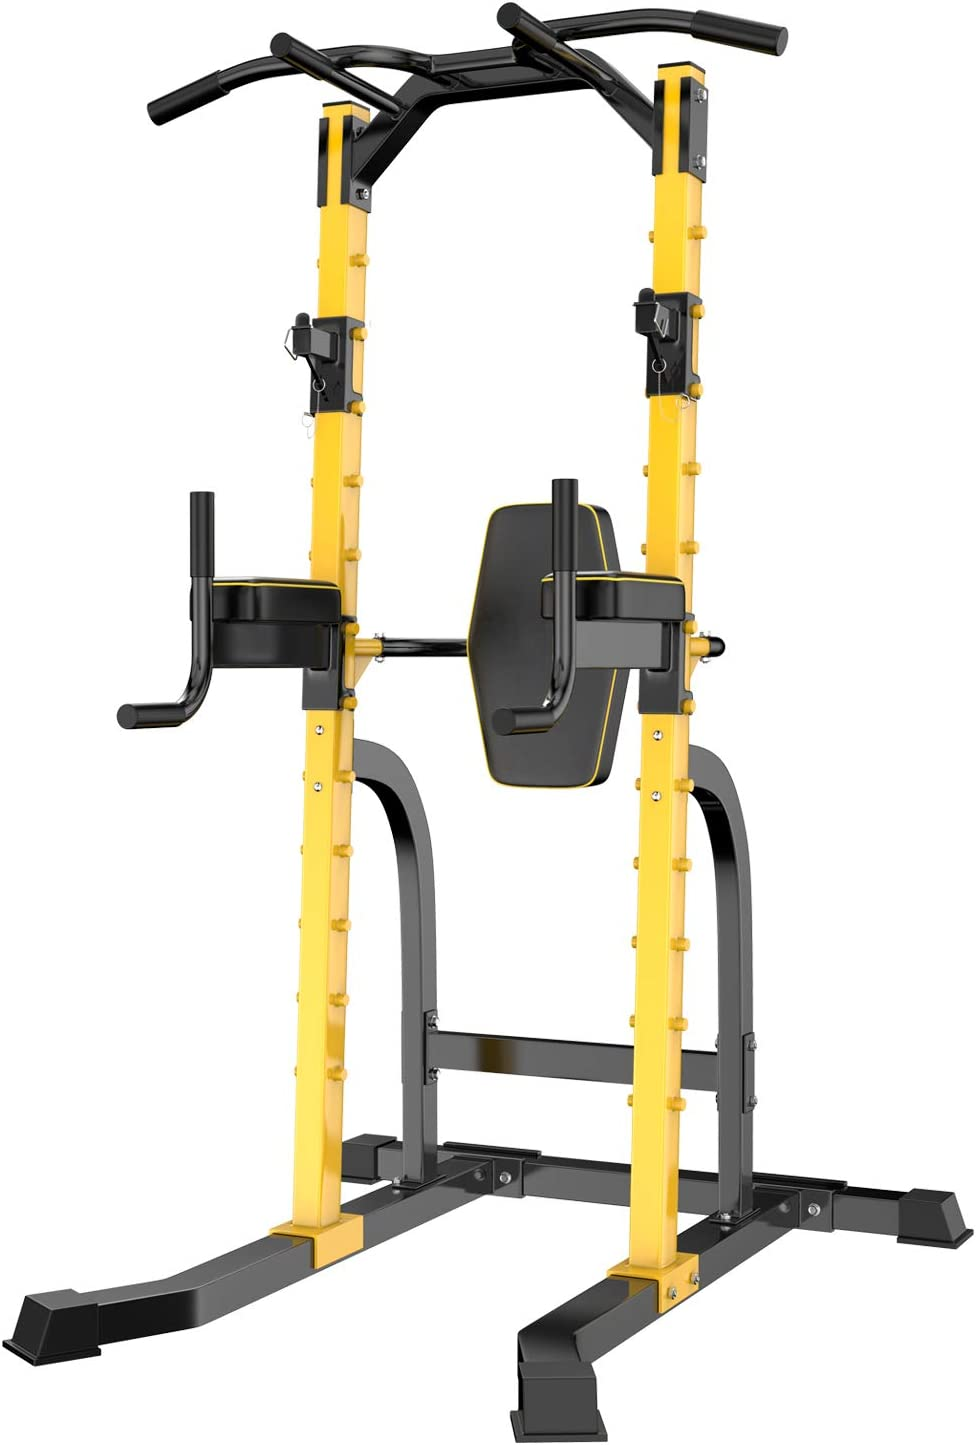 ZENOVA Power Tower Multi-Function Home Strength Training Tower Dip Stands Workout Station